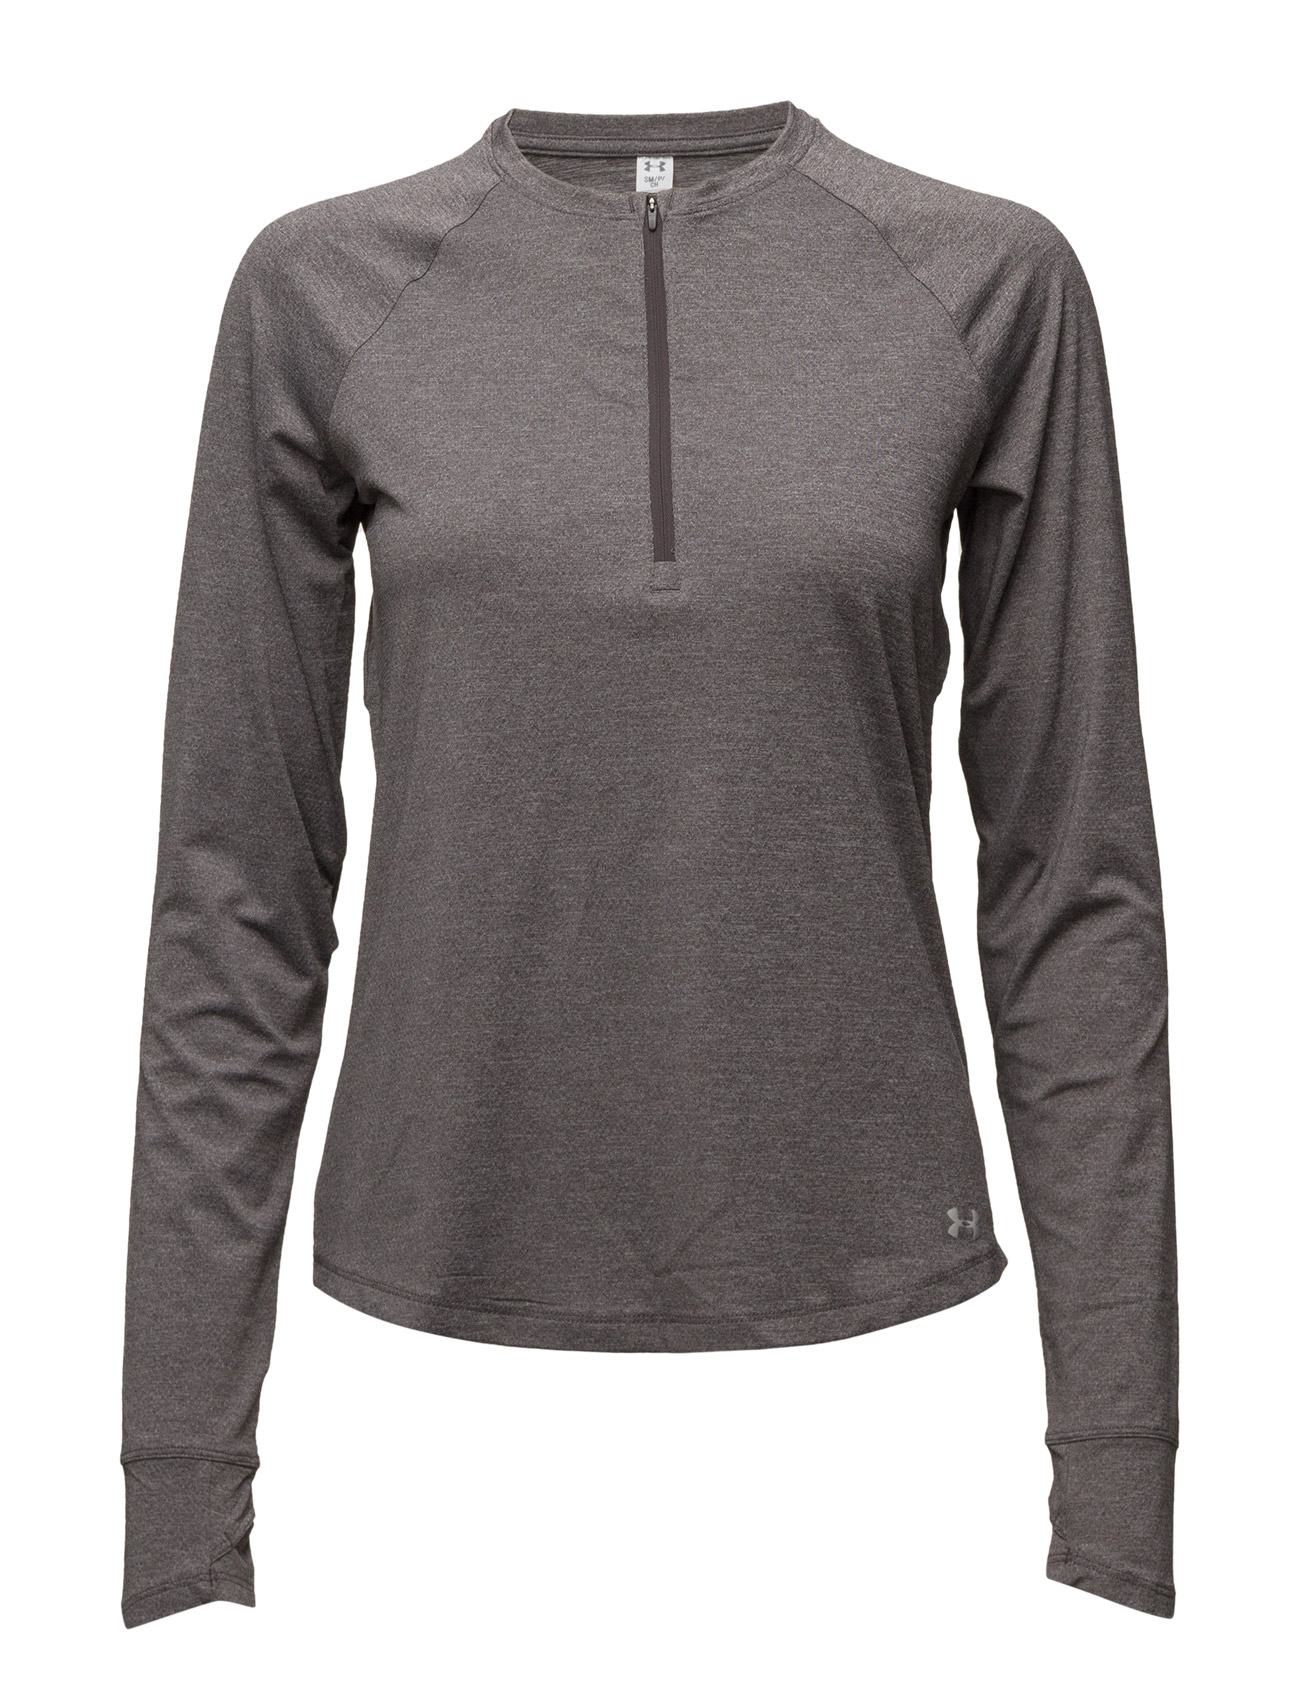 Fly By 1/2 Zip Under Armour Sports toppe til Damer i